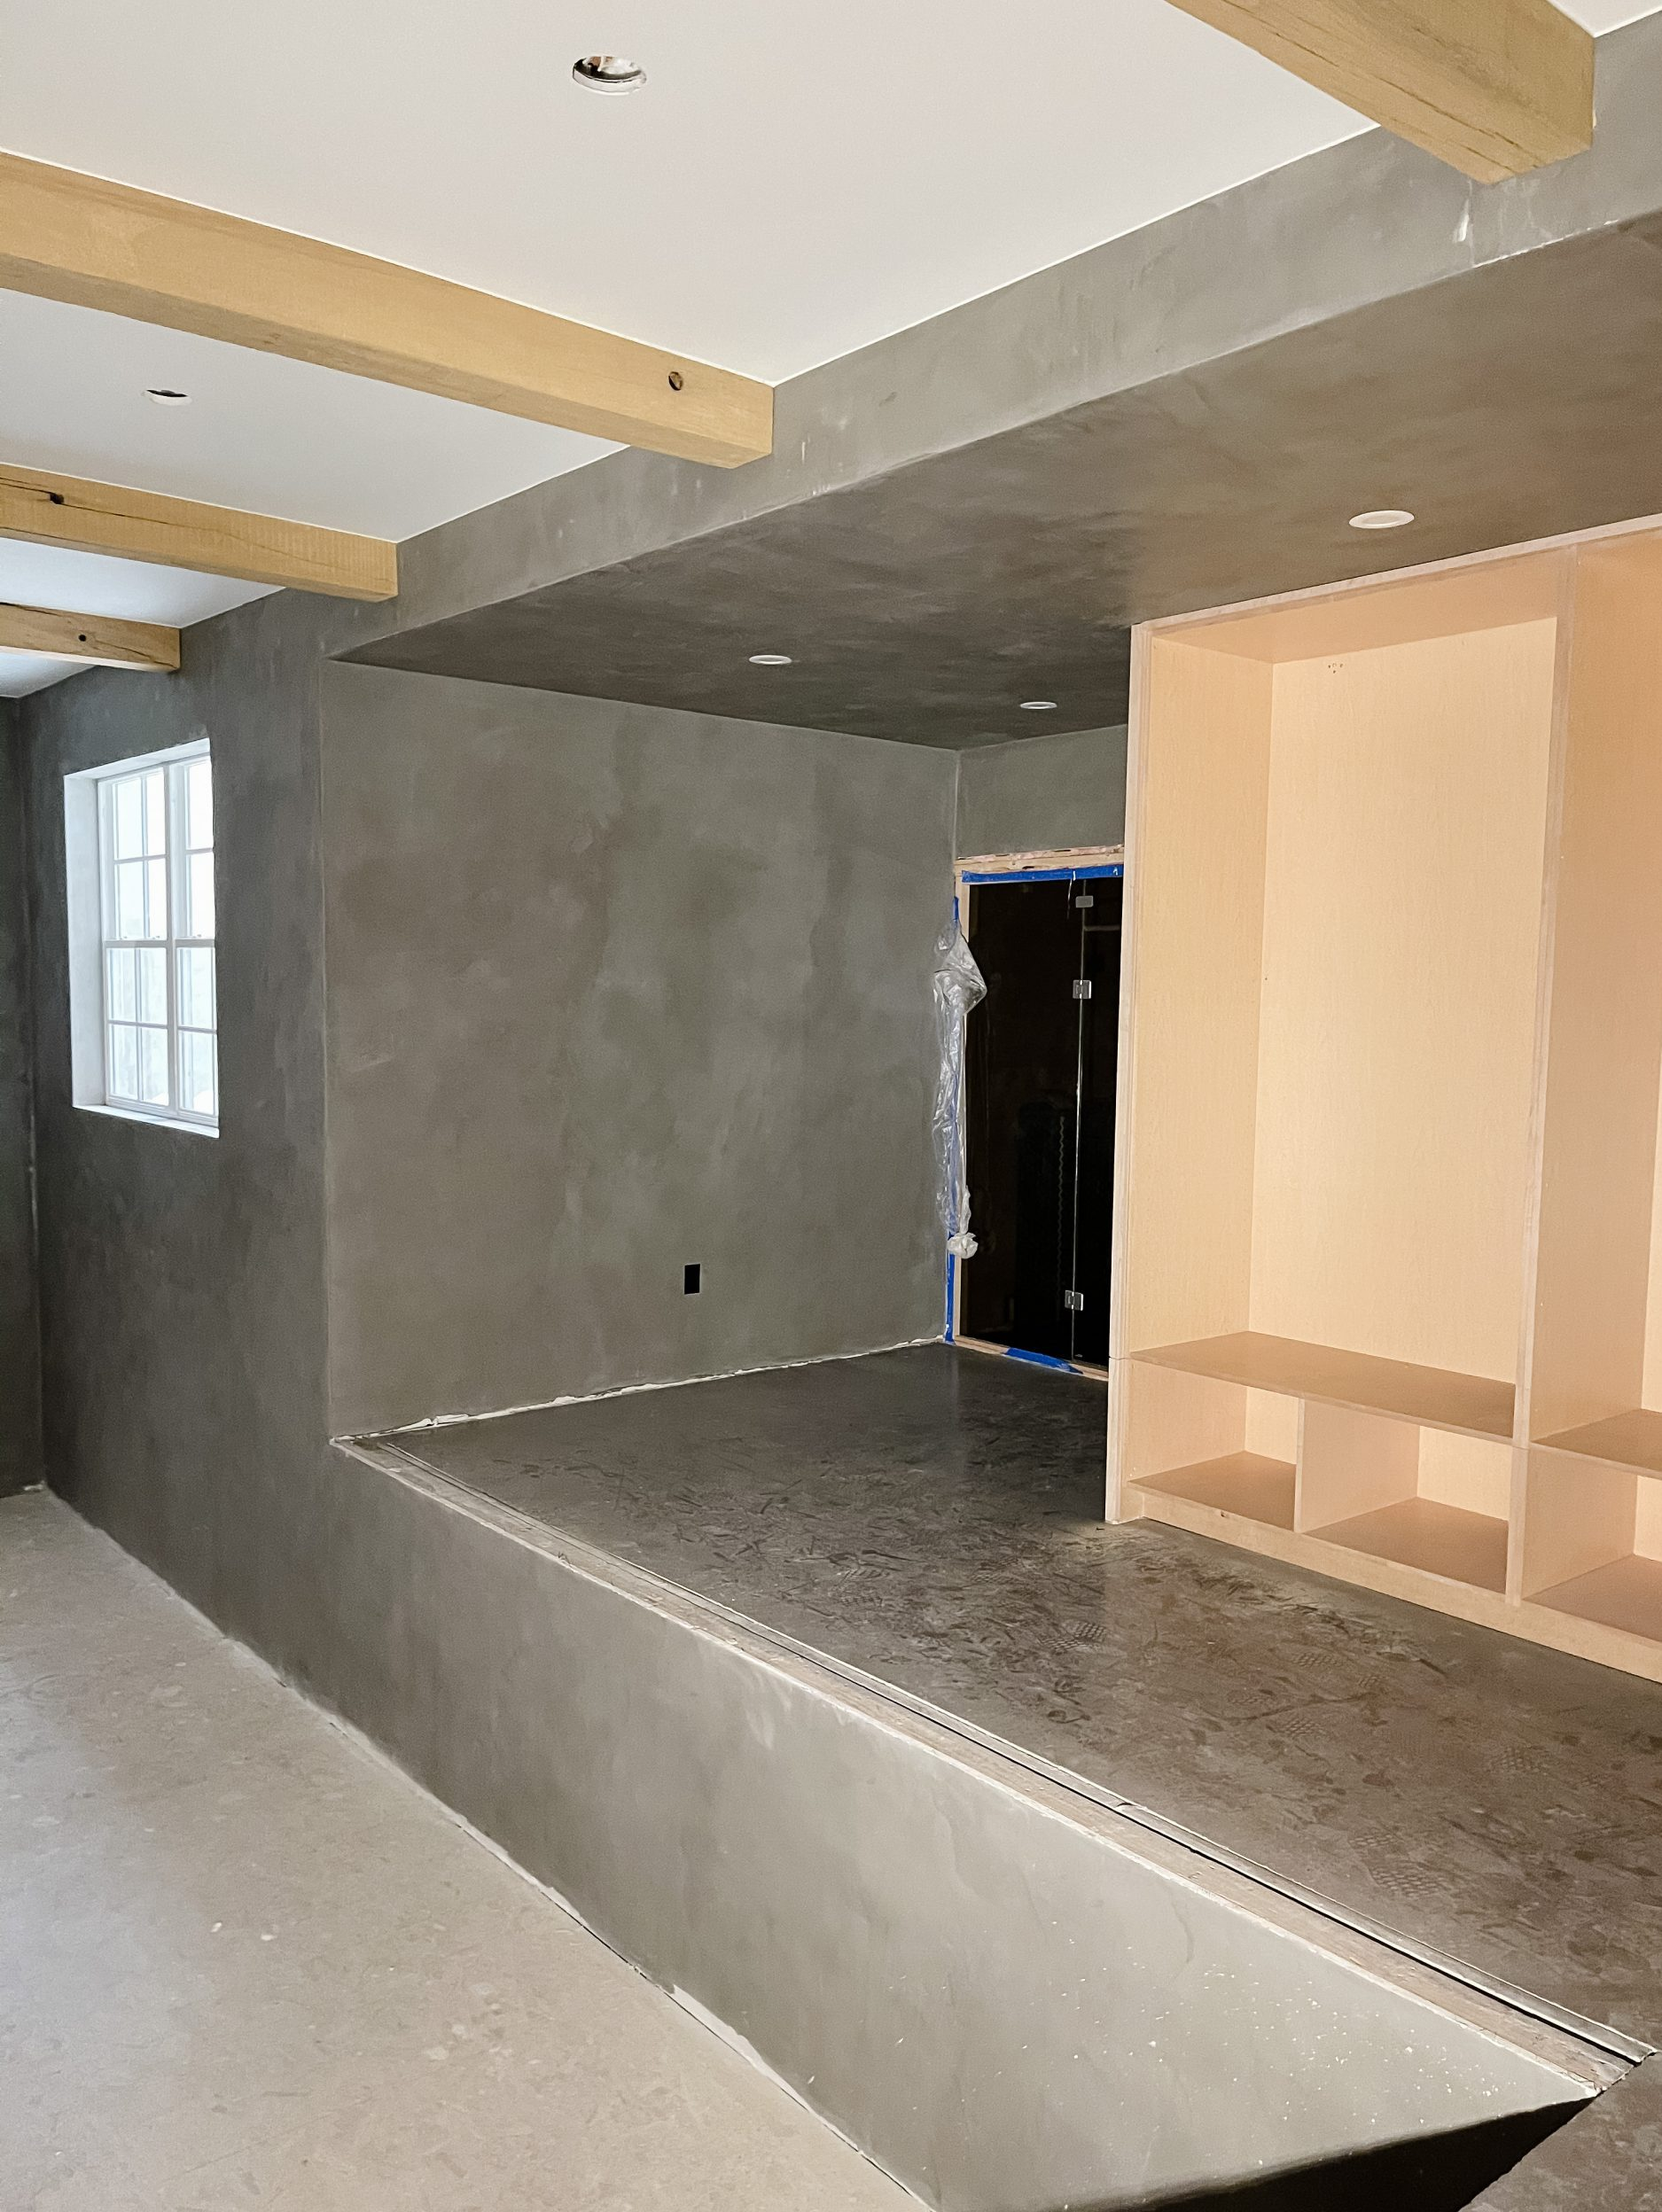 The McGee Home Basement: Progress Update